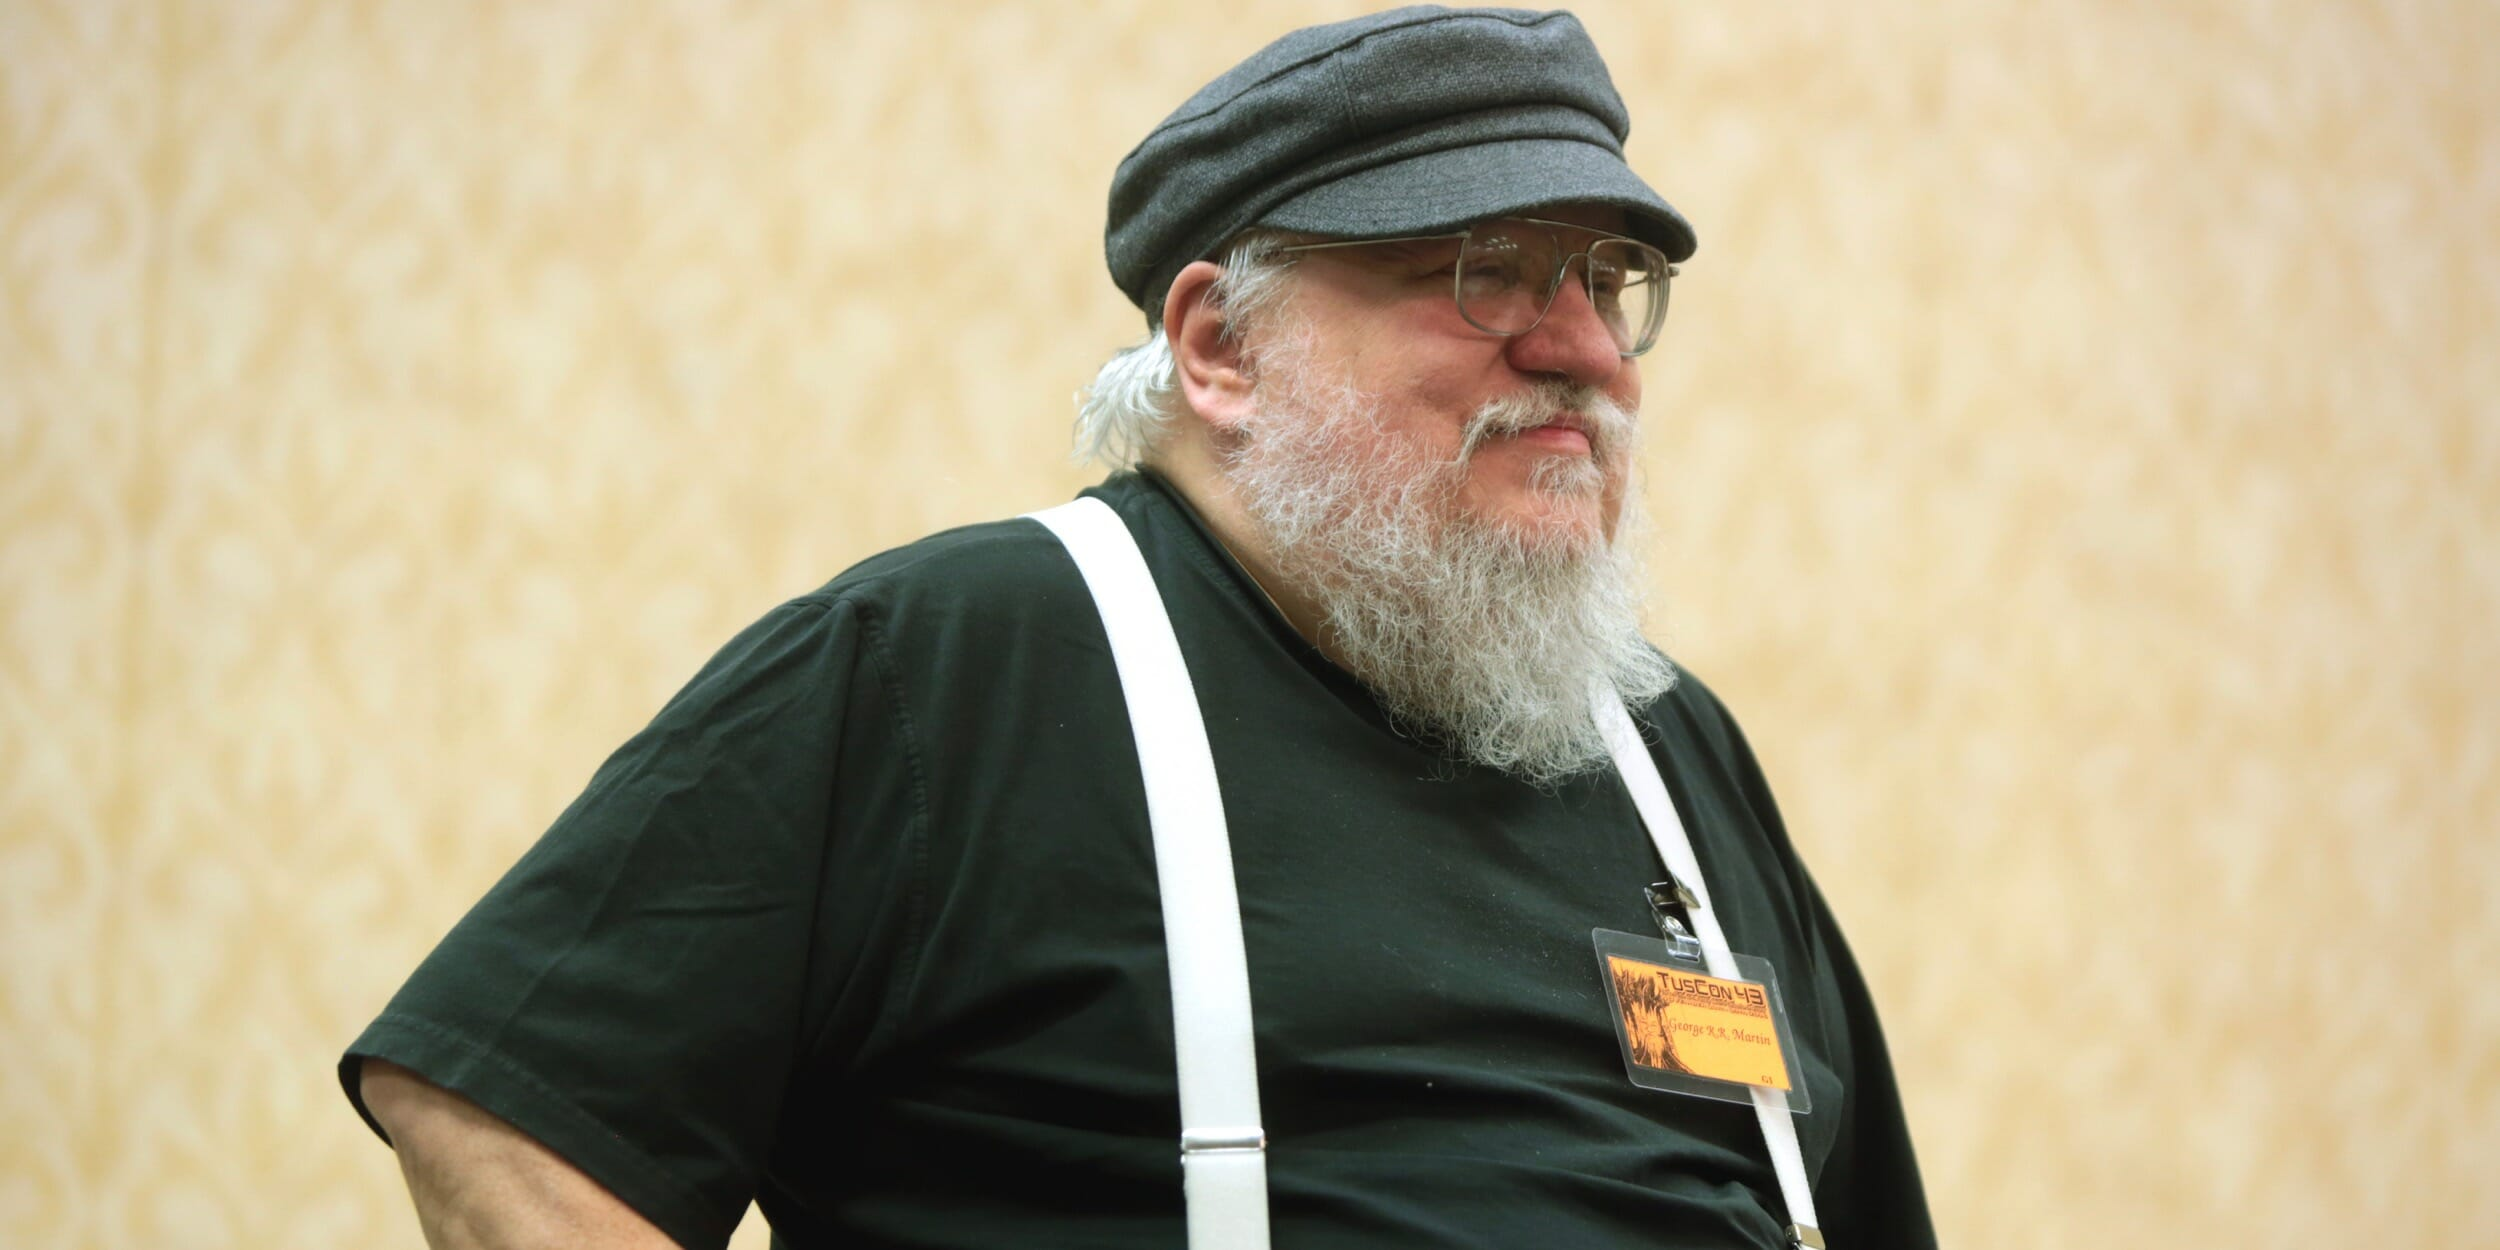 George R R Martin Likes Books By Dudes And The Big Bang